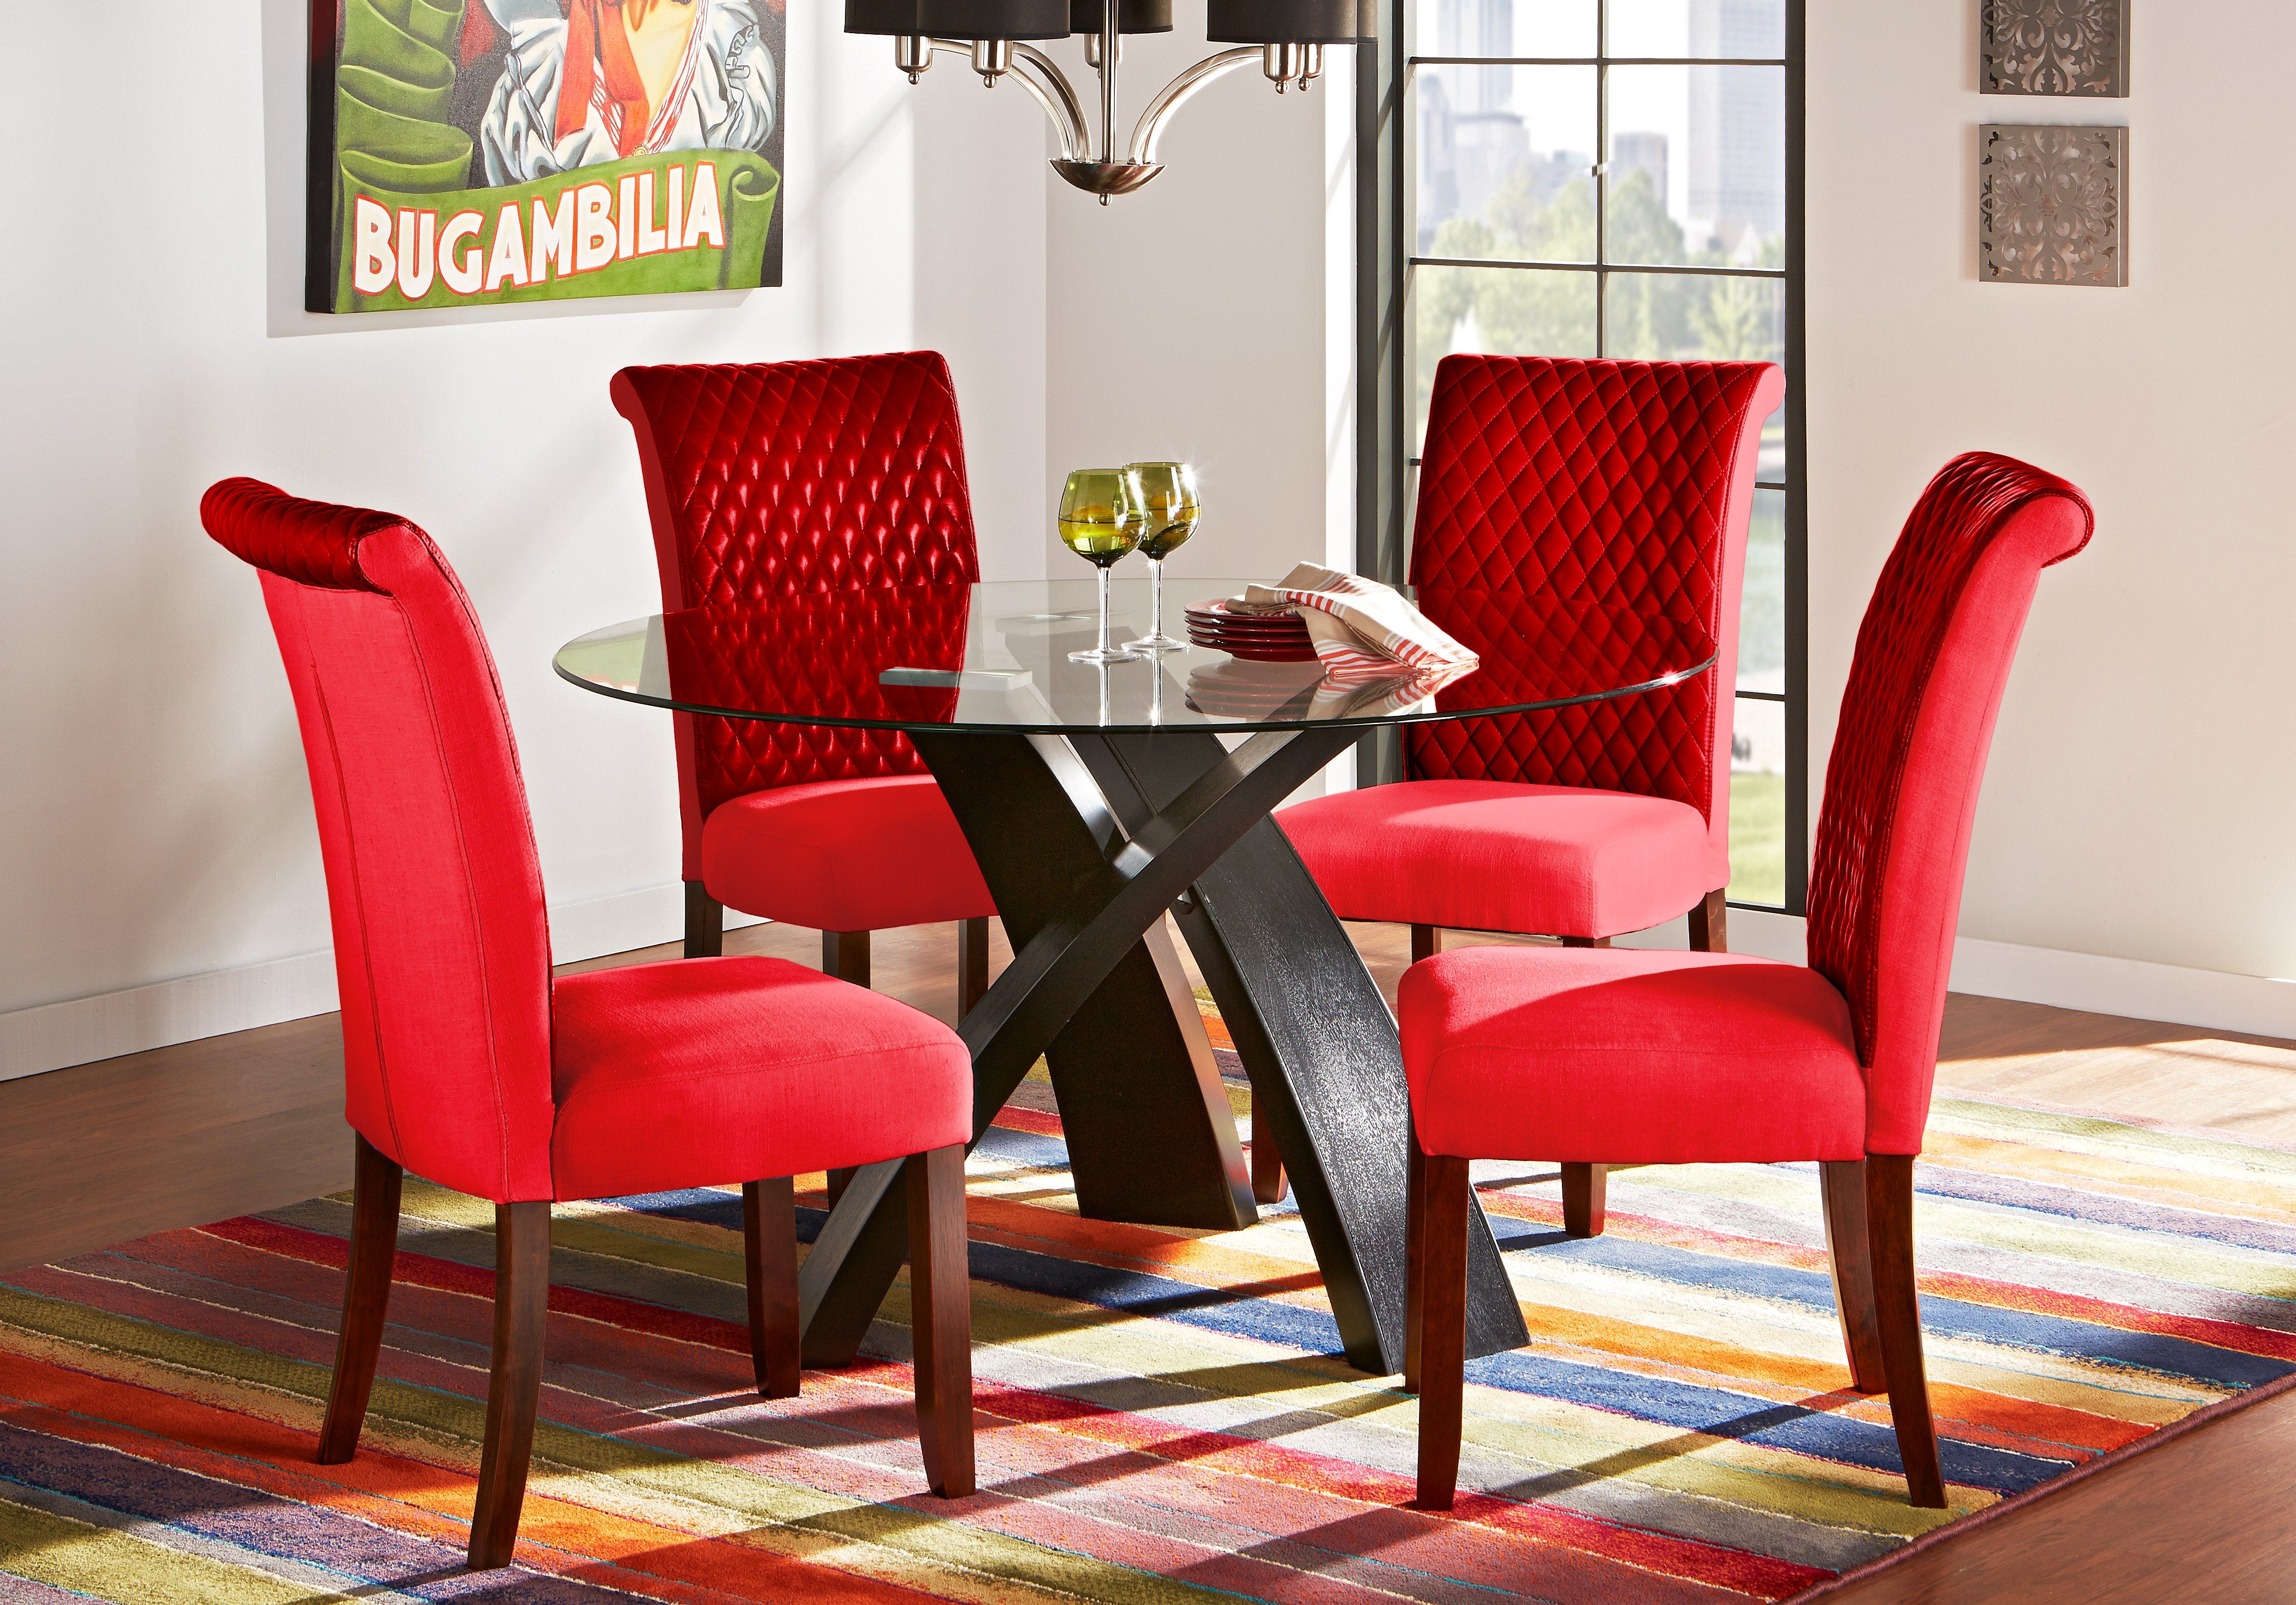 Del Mar Ebony 5 Pc Round Dining Set with Red Chairs | Round ...